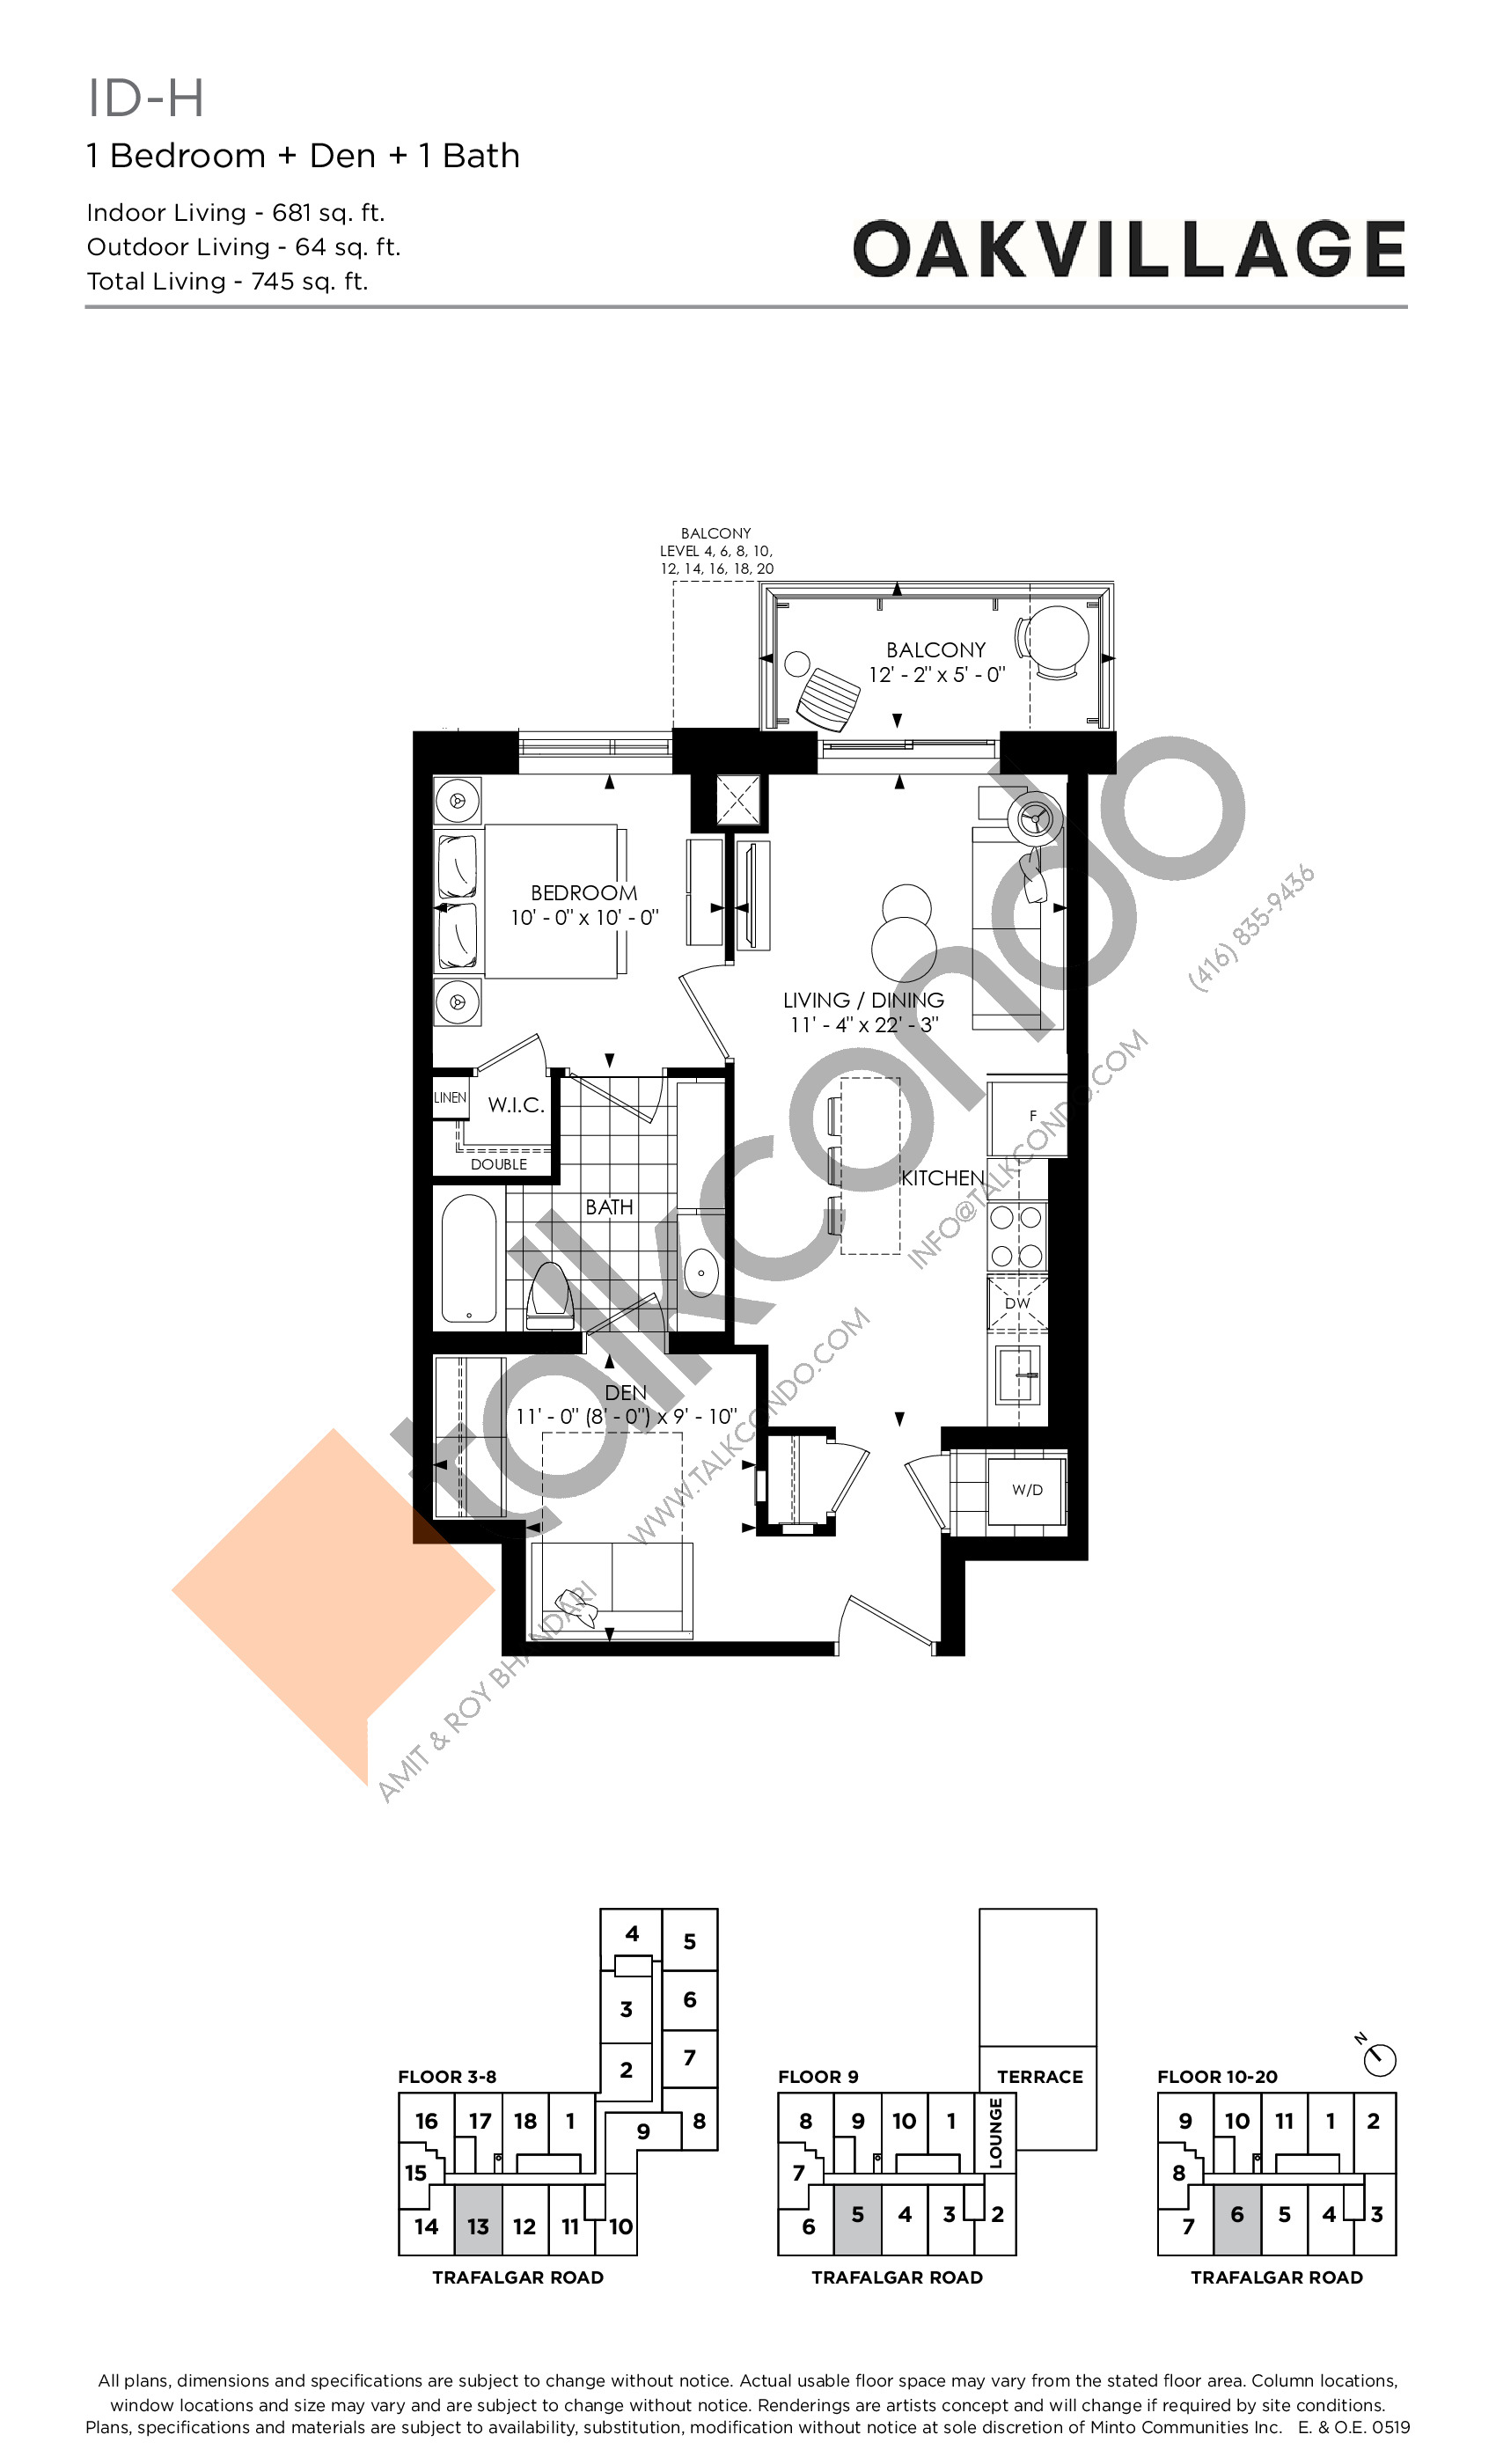 1D-H (Tower) Floor Plan at Oakvillage Phase 2 - 681 sq.ft